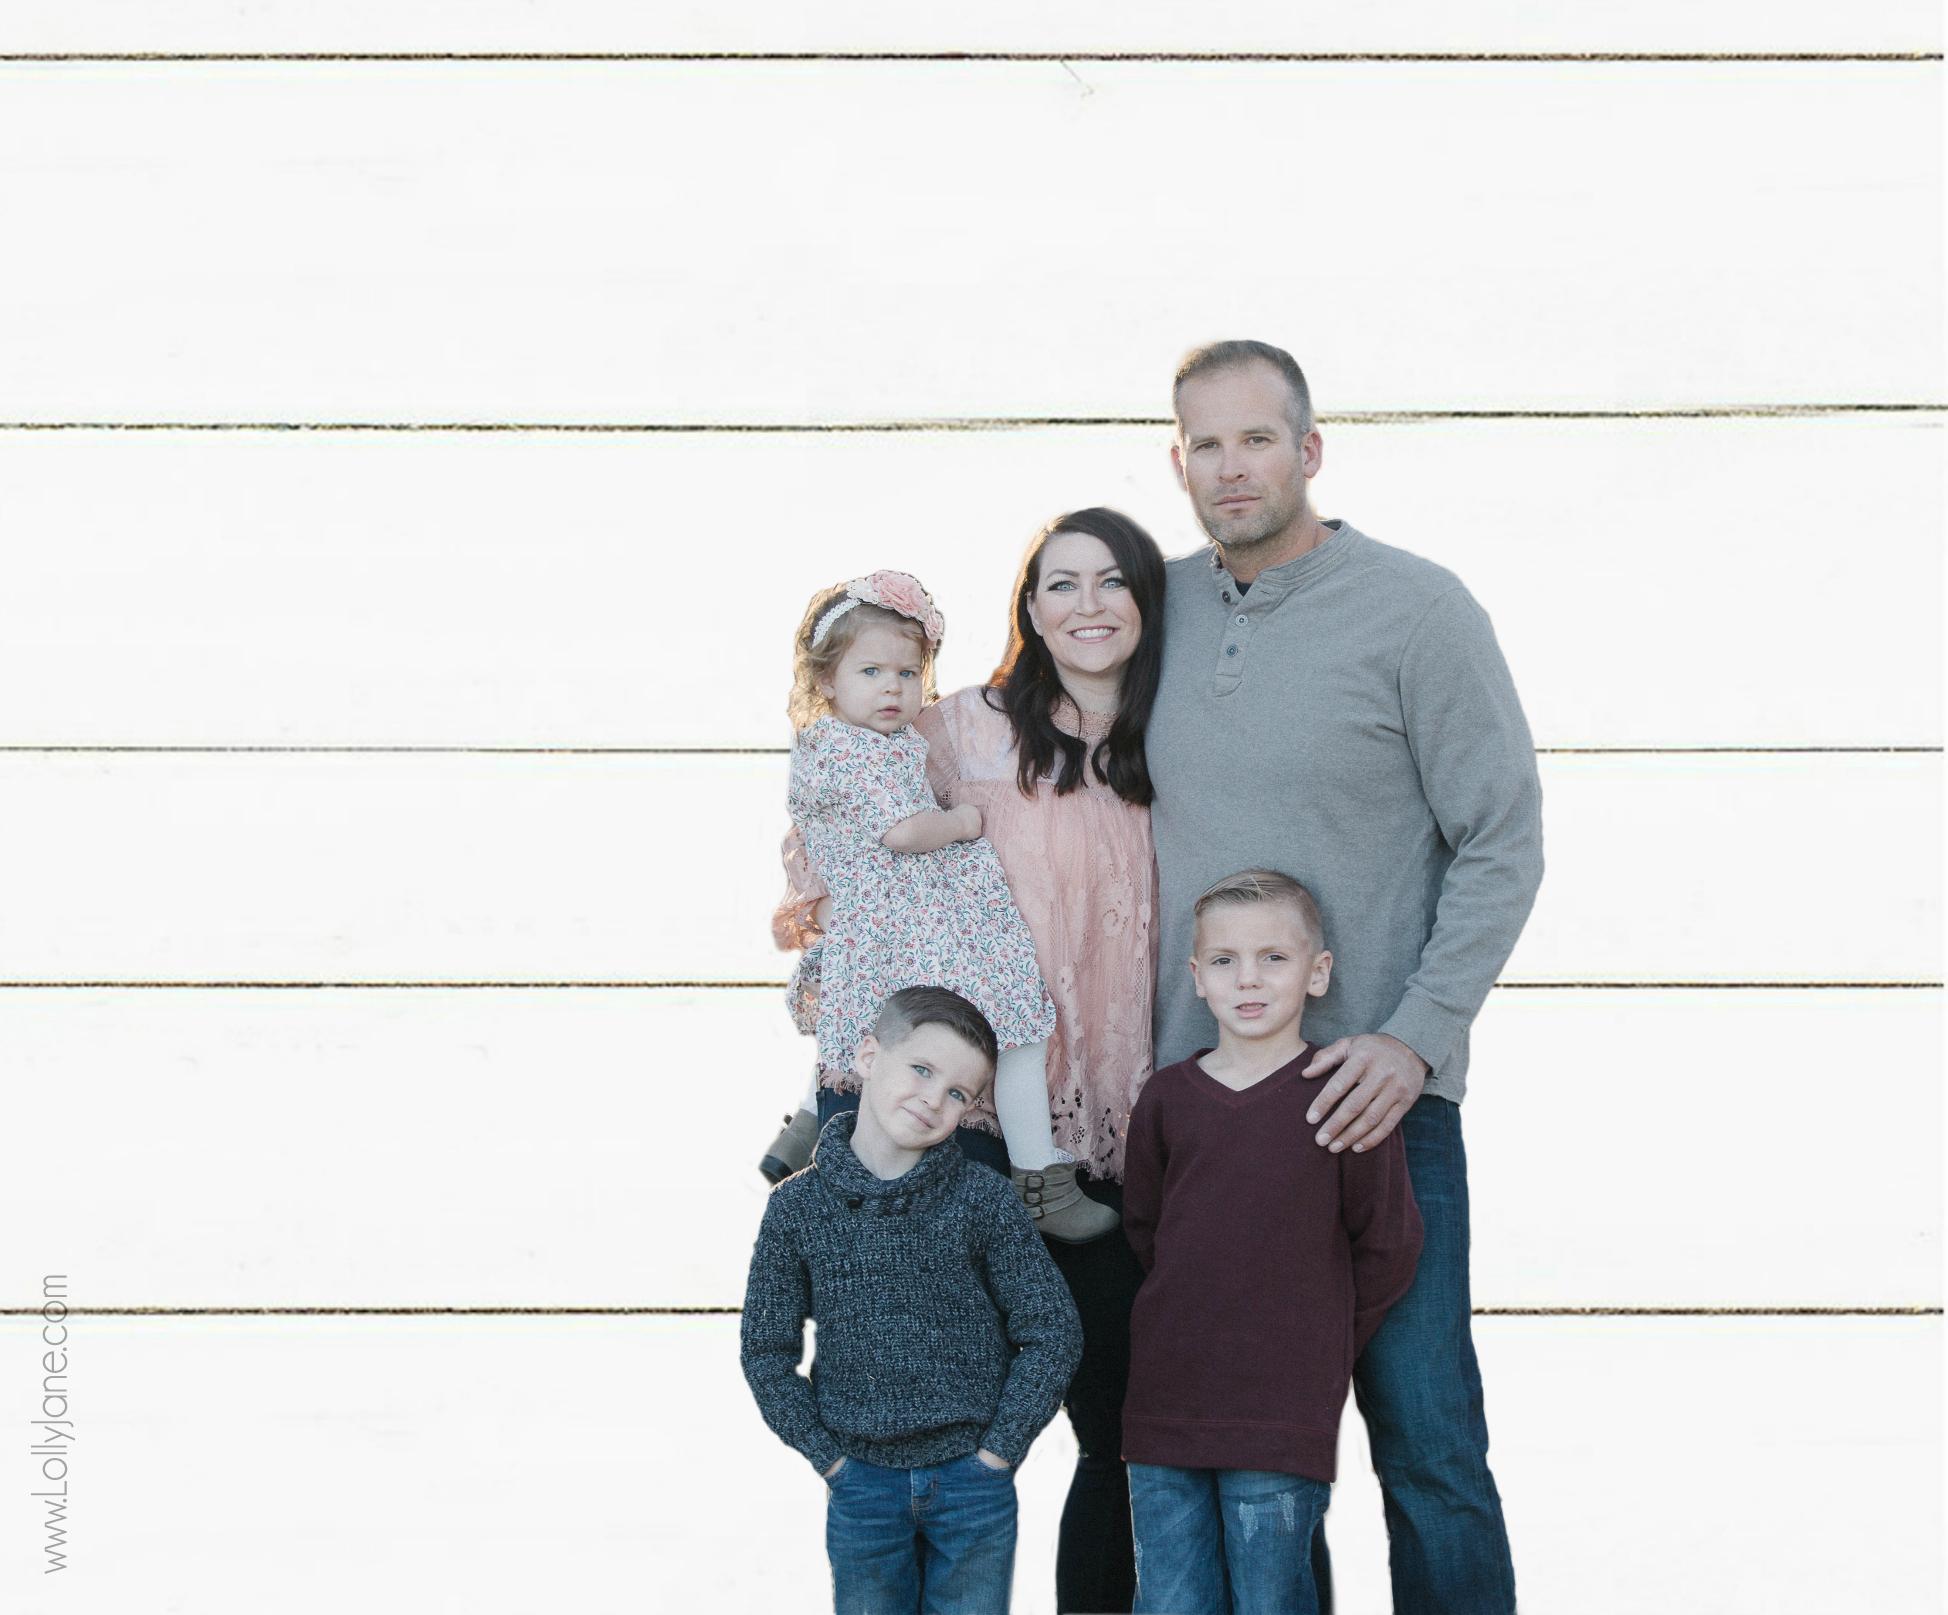 Love the trending shiplap background for this family pic! Get this look with a few quick steps in PSE 18, awesome tutorial!